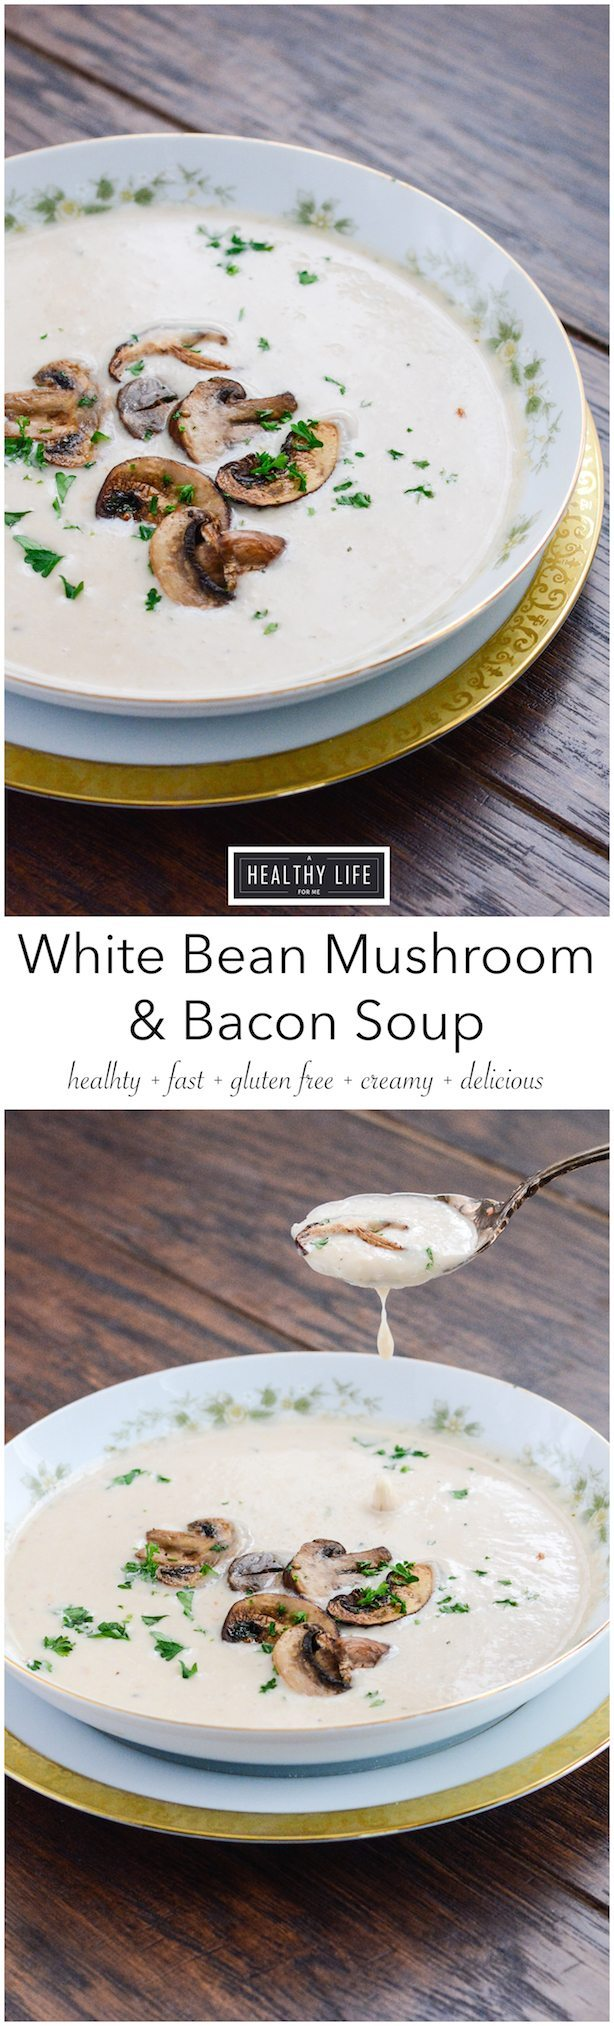 White Bean Mushroom Bacon Soup is creamy, spicy, rustic soup that is healthy, gluten free and loaded with fiber and protein   ahealthylifeforme.com